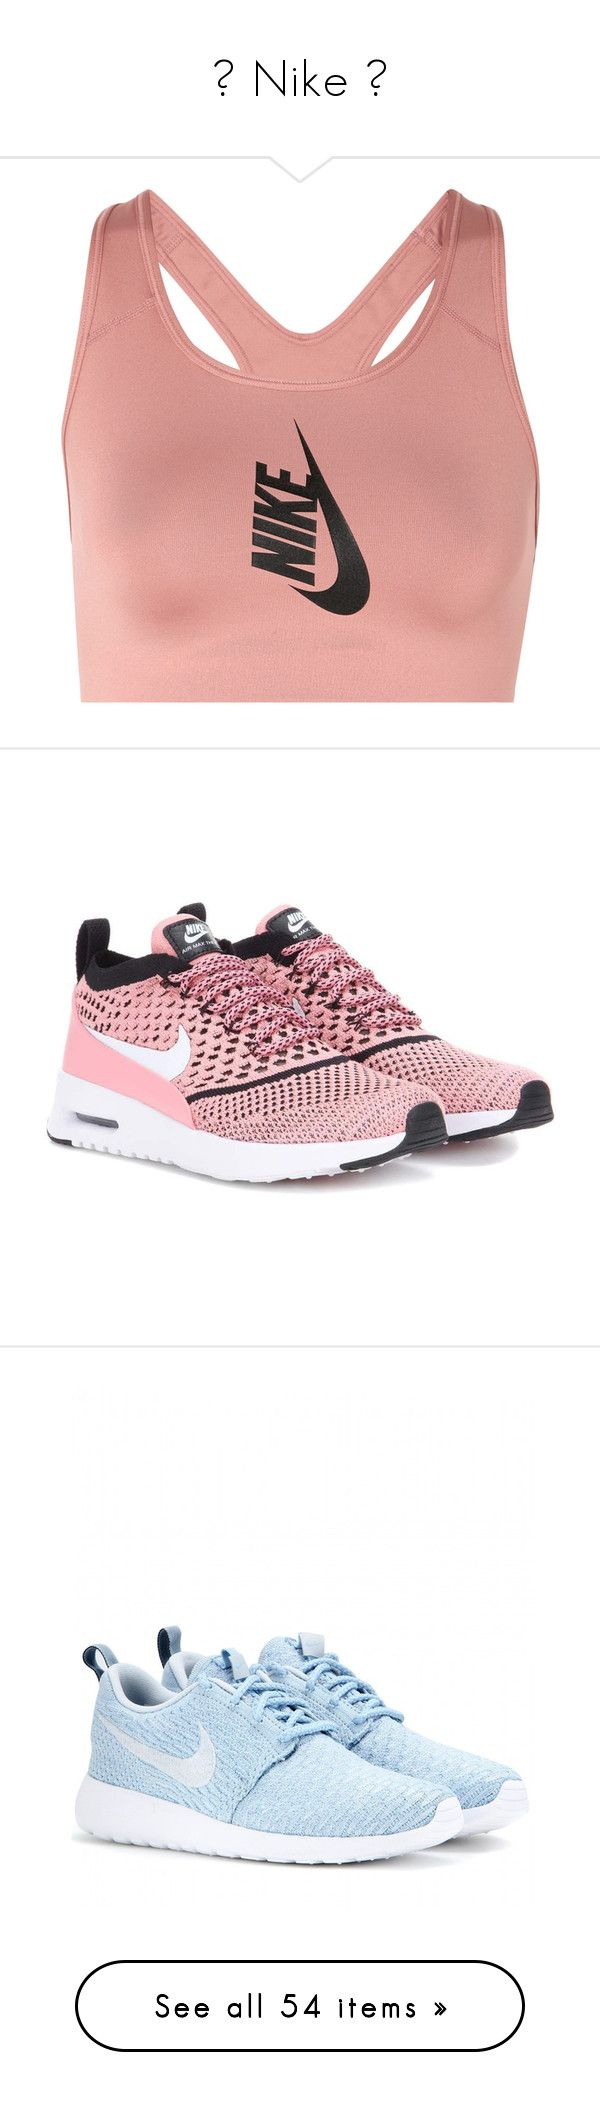 ✨ Nike ✨ by arya14 on Polyvore featuring polyvore, women's fashion, clothing, activewear, sports bras, nike, nike activewear, racerback sports bra, nike sportswear, seamless sports bra, nike sports bra, stretch jersey, pink activewear, pink sports bra, pink sportswear, shoes, sneakers, pink, sport, sports footwear, pink sneakers, sports shoes, nike sneakers, flats, blue, flyknit trainer, blue shoes, flat pump shoes, flat pumps, tops, racer back sports bra, sparkly sports bras, strappy sports…